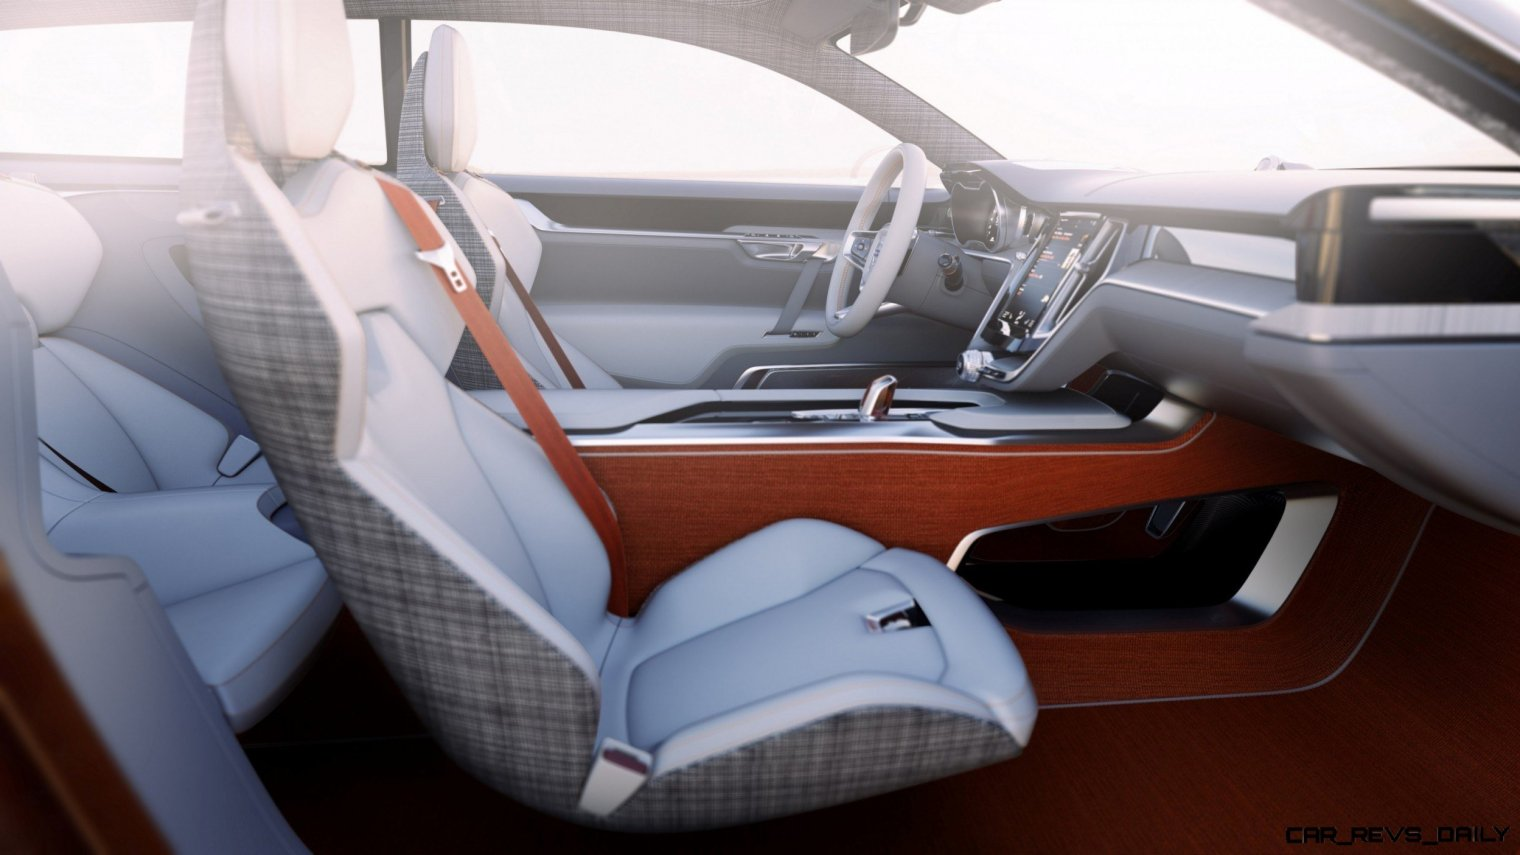 Concept Estate Confirms It! Volvo's New Design Lead Th. Ingenlath Should Be Sweden's Man of the Year 9